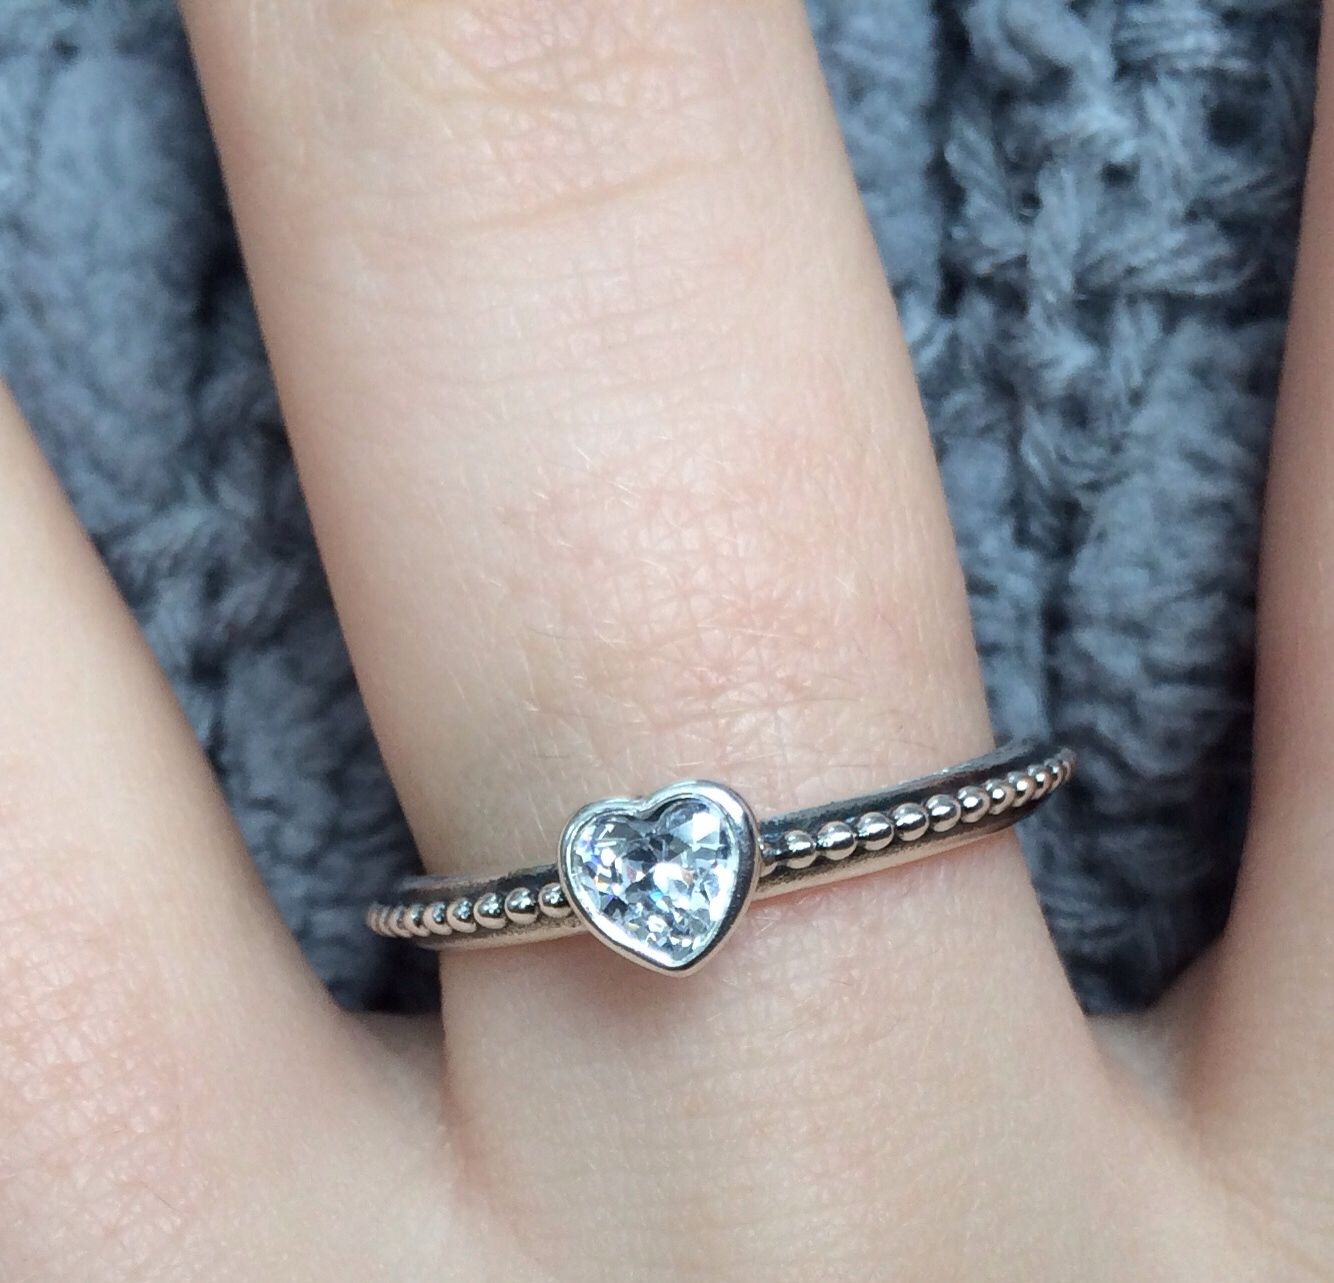 Cutest little pandora ring I wear this with my princess ring I just love  them ❤️